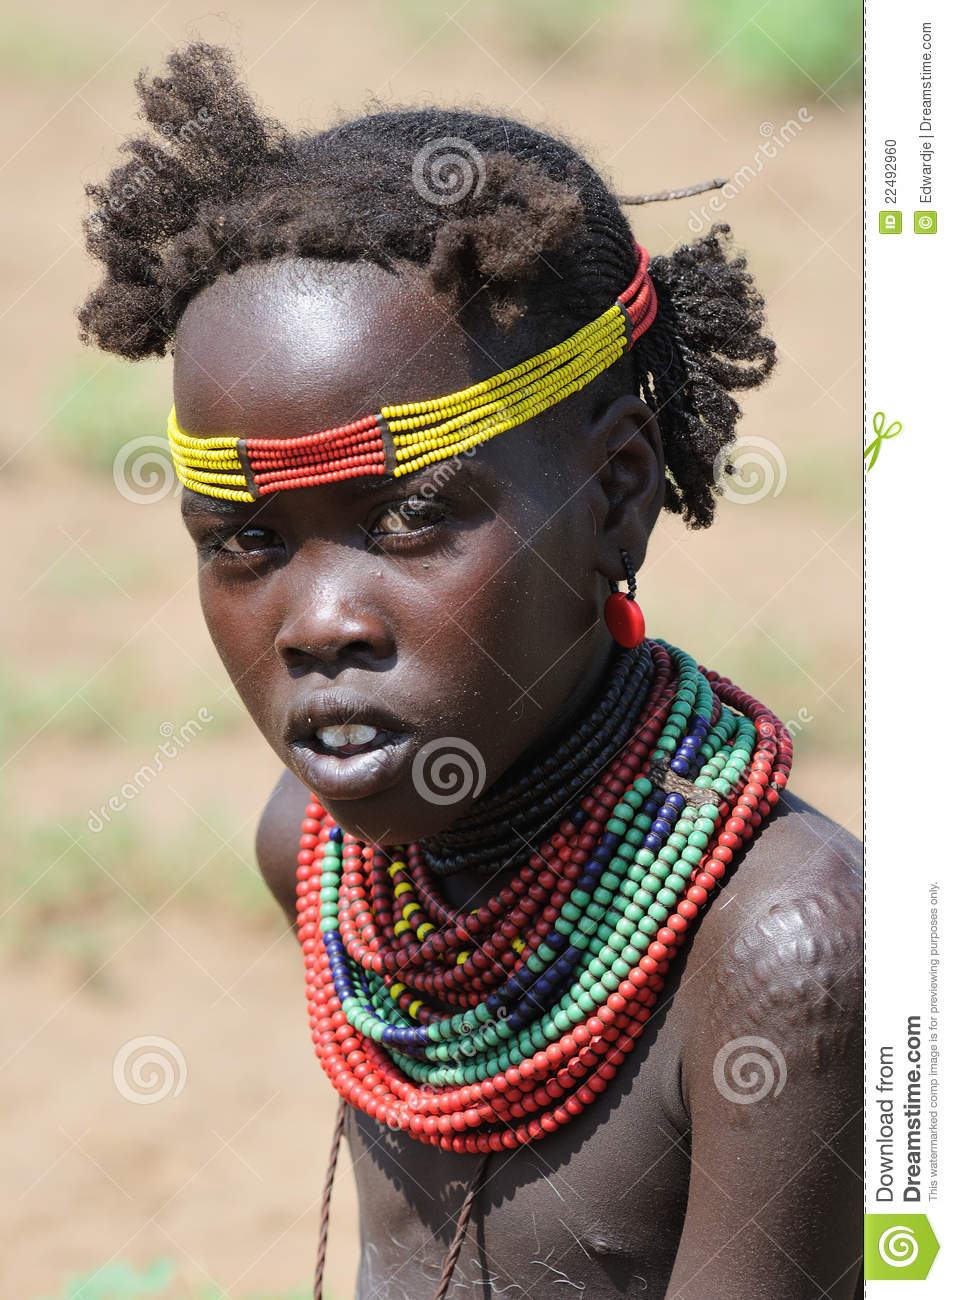 Ethiopian Modelist http://www.dreamstime.com/stock-photo-ethiopian-people-image22492960